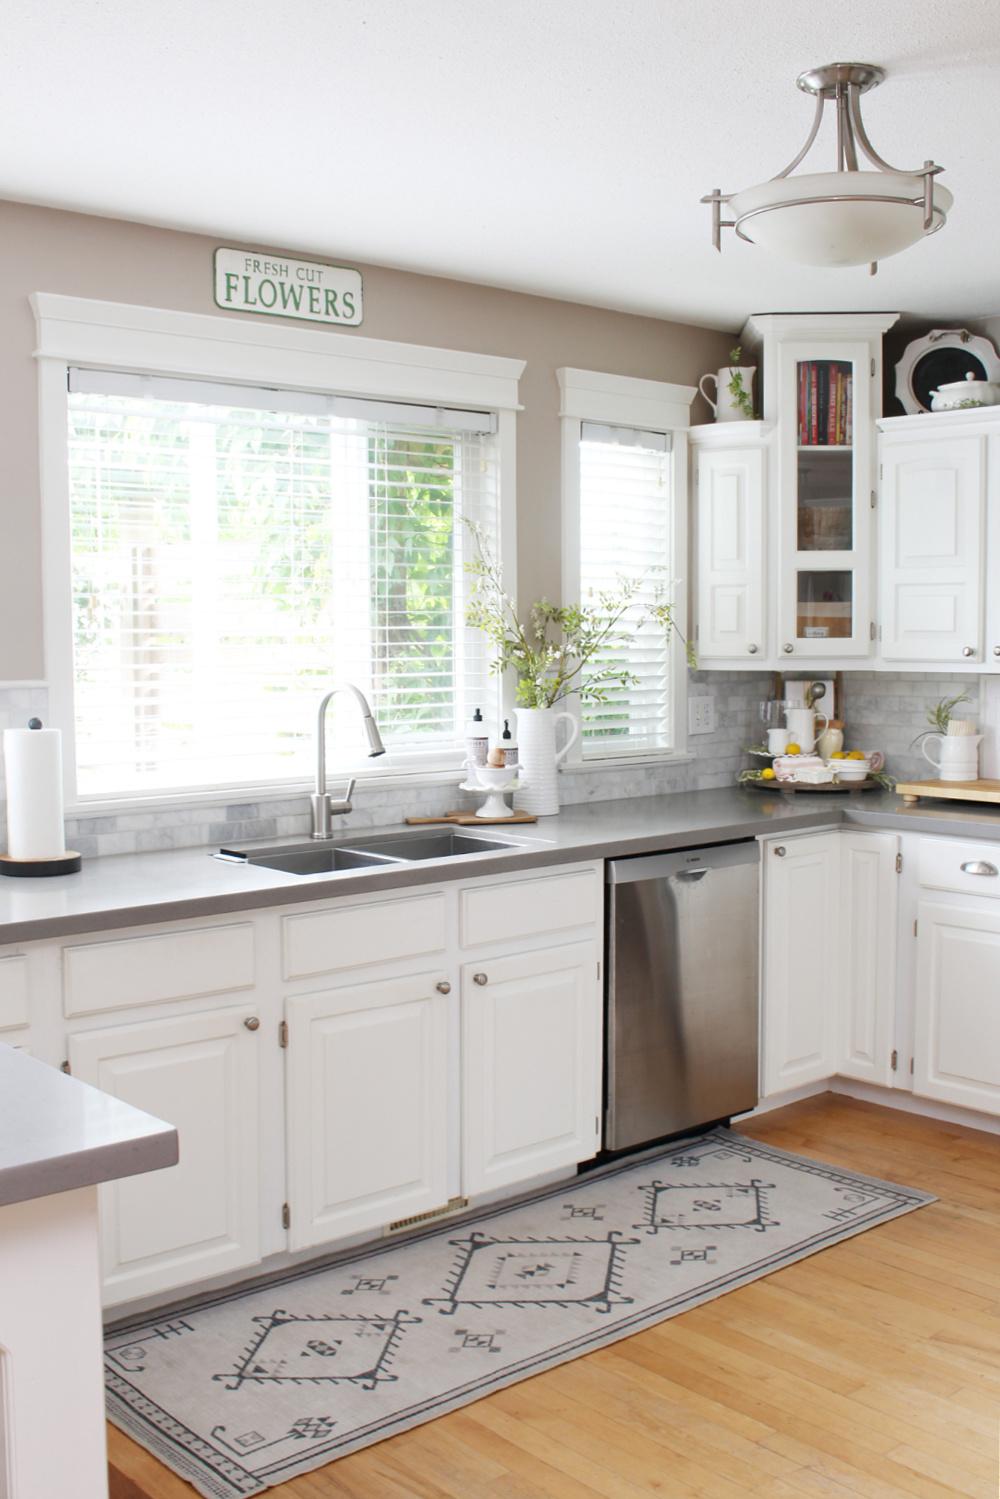 White kitchen decorated for summer with soft, muted colors for a fresh look.